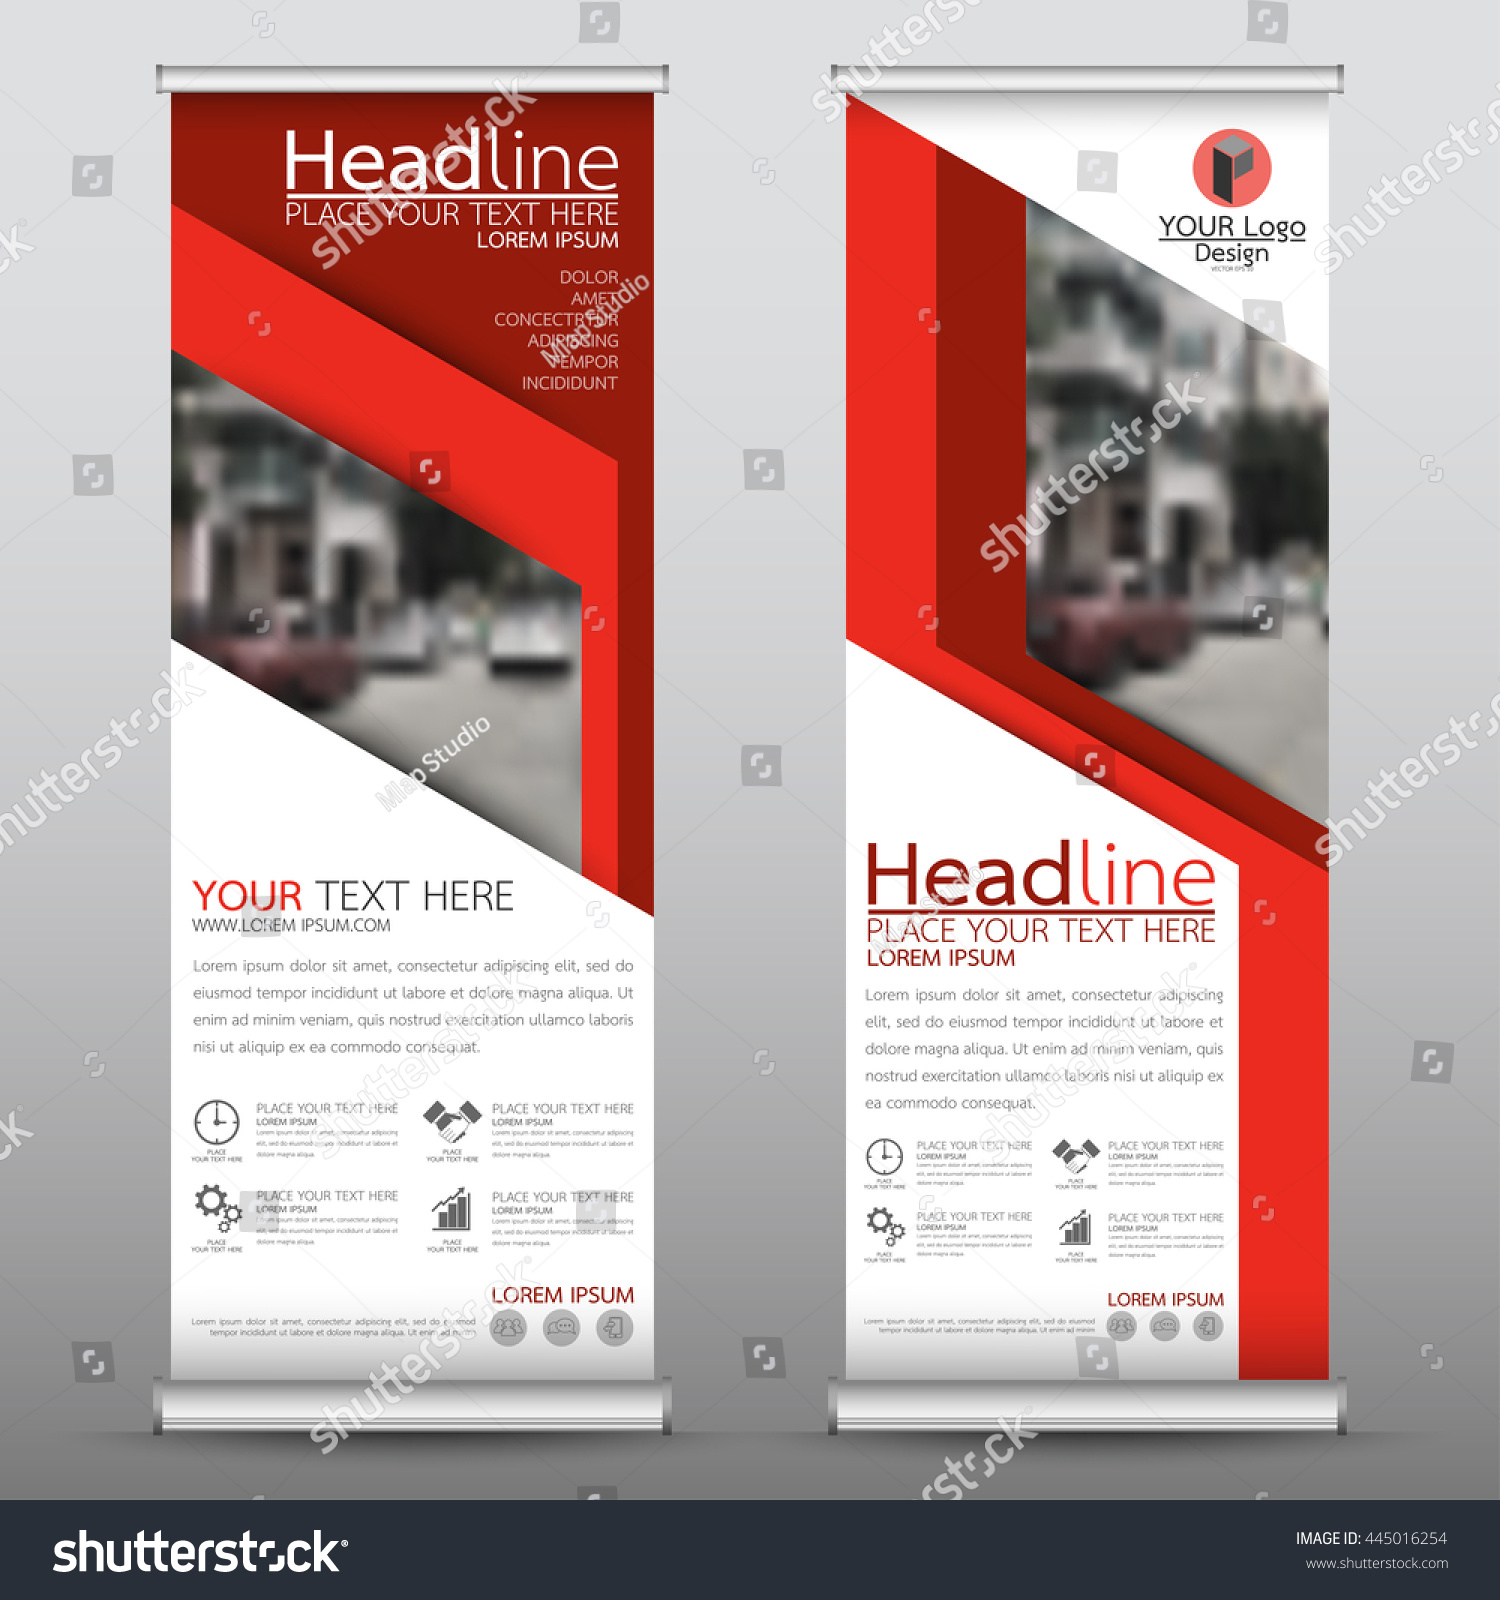 red roll business brochure flyer banner stock vector  red roll up business brochure flyer banner design vertical template vector cover presentation abstract geometric